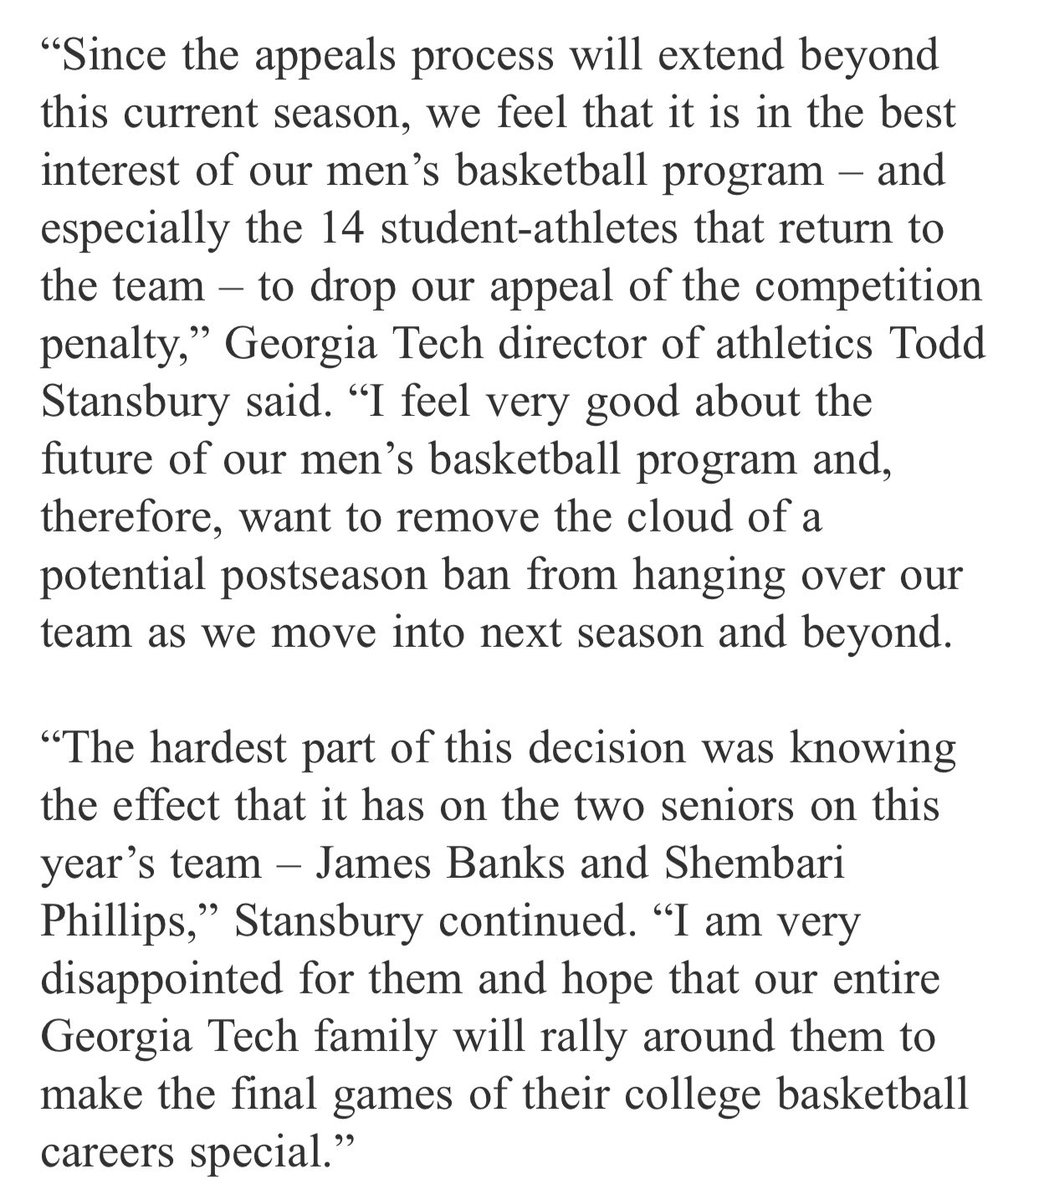 Official statement from Todd Stansbury